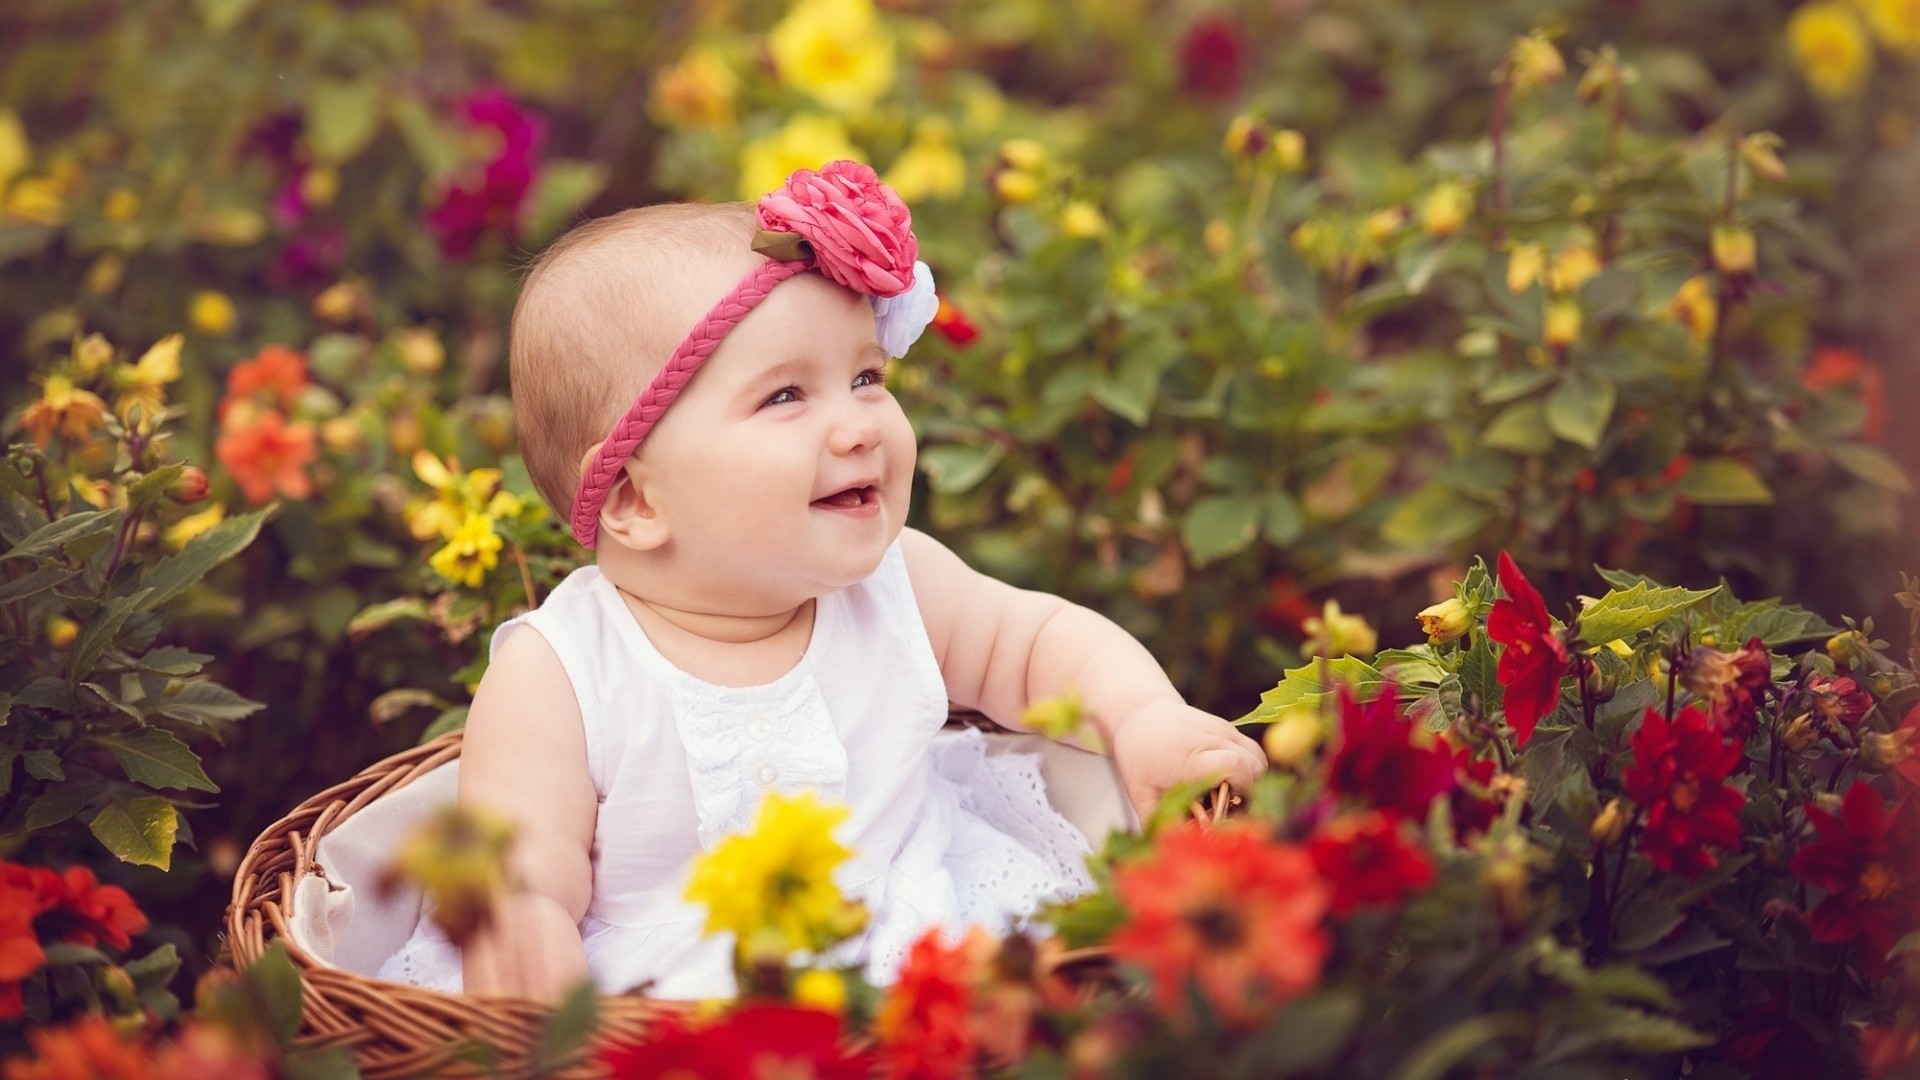 Cute Baby With Smile amazing to watch such pretty smiley kid